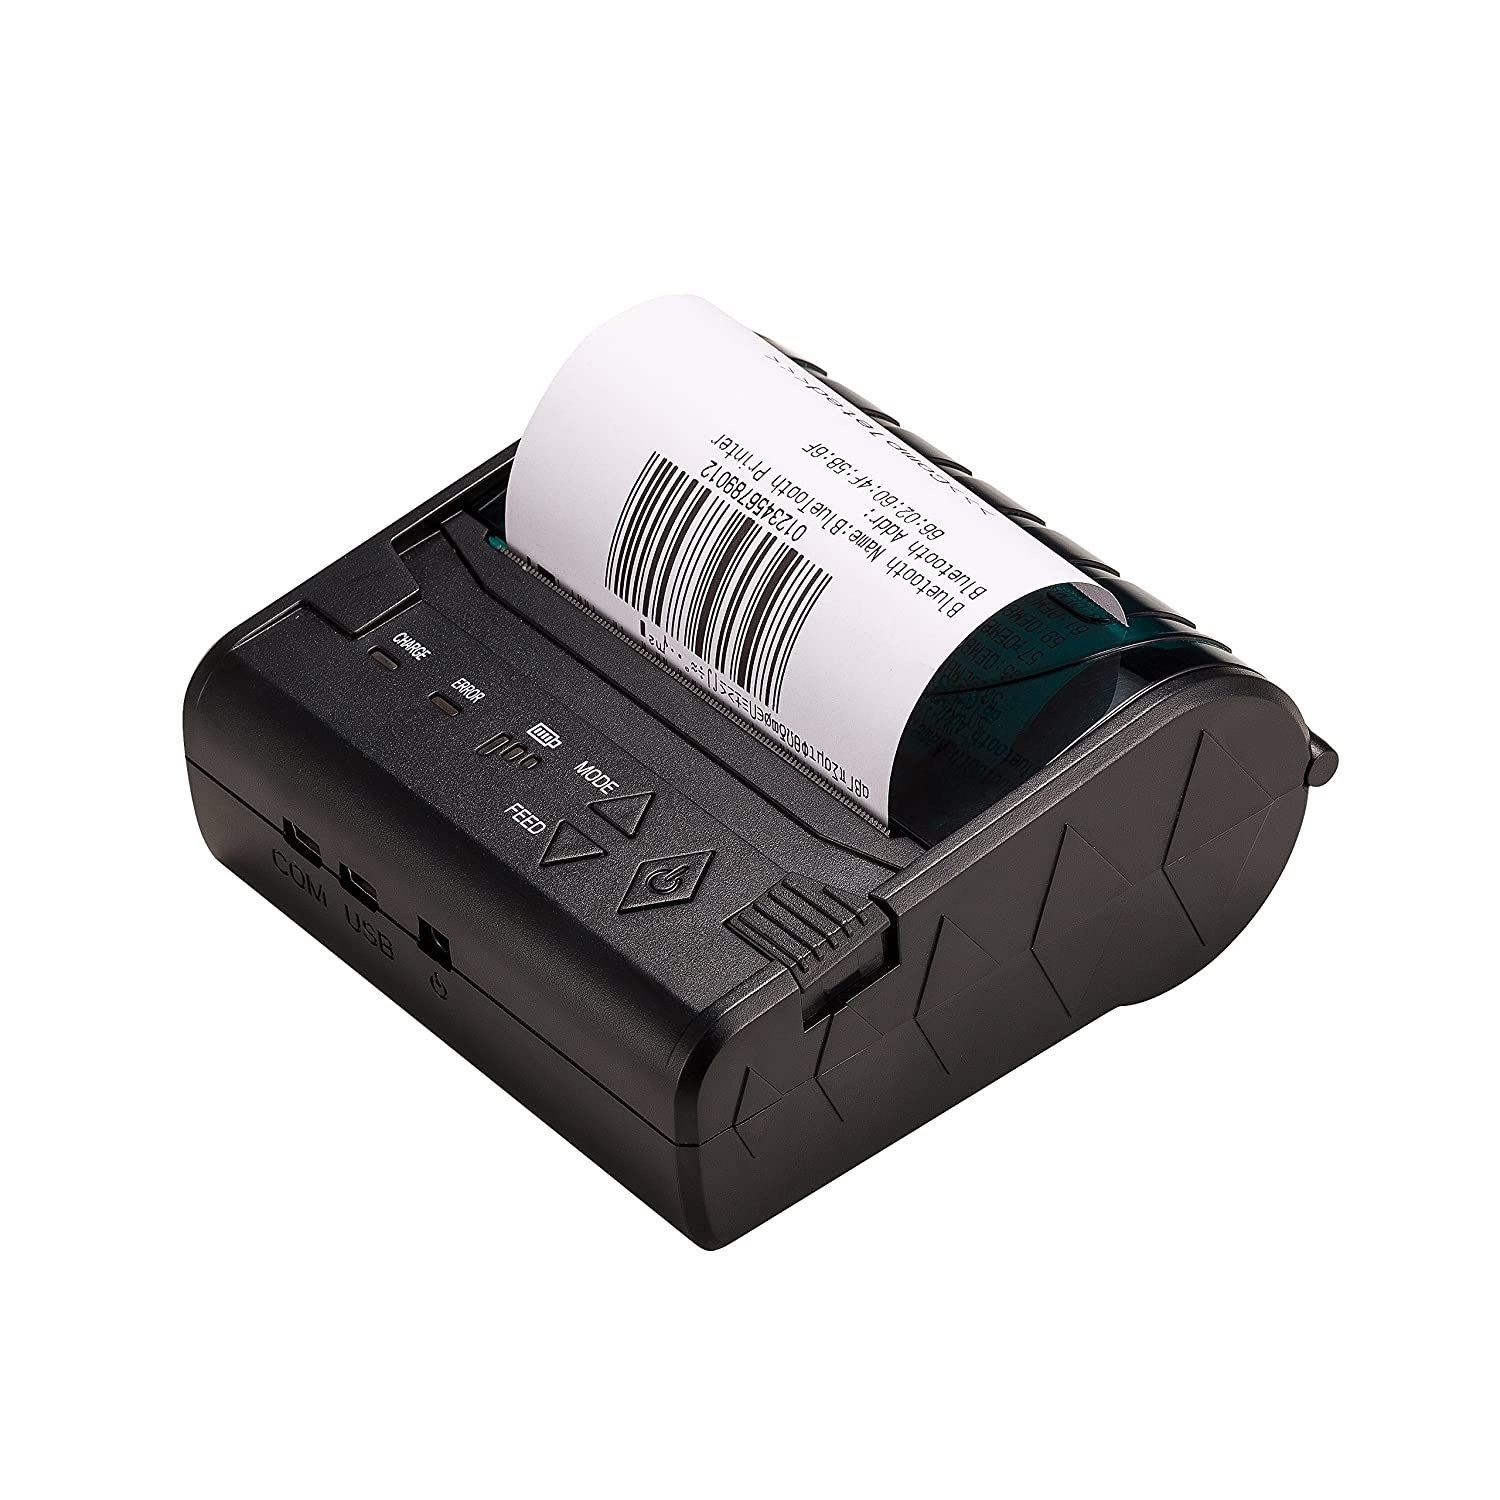 ZKTeco 58mm Mini Tragbar POS Drucker Bluetooth Thermodrucker Kassendrucker Bondrucker POS Receipt Thermal Printer ZKTeco CO. LTD 5808